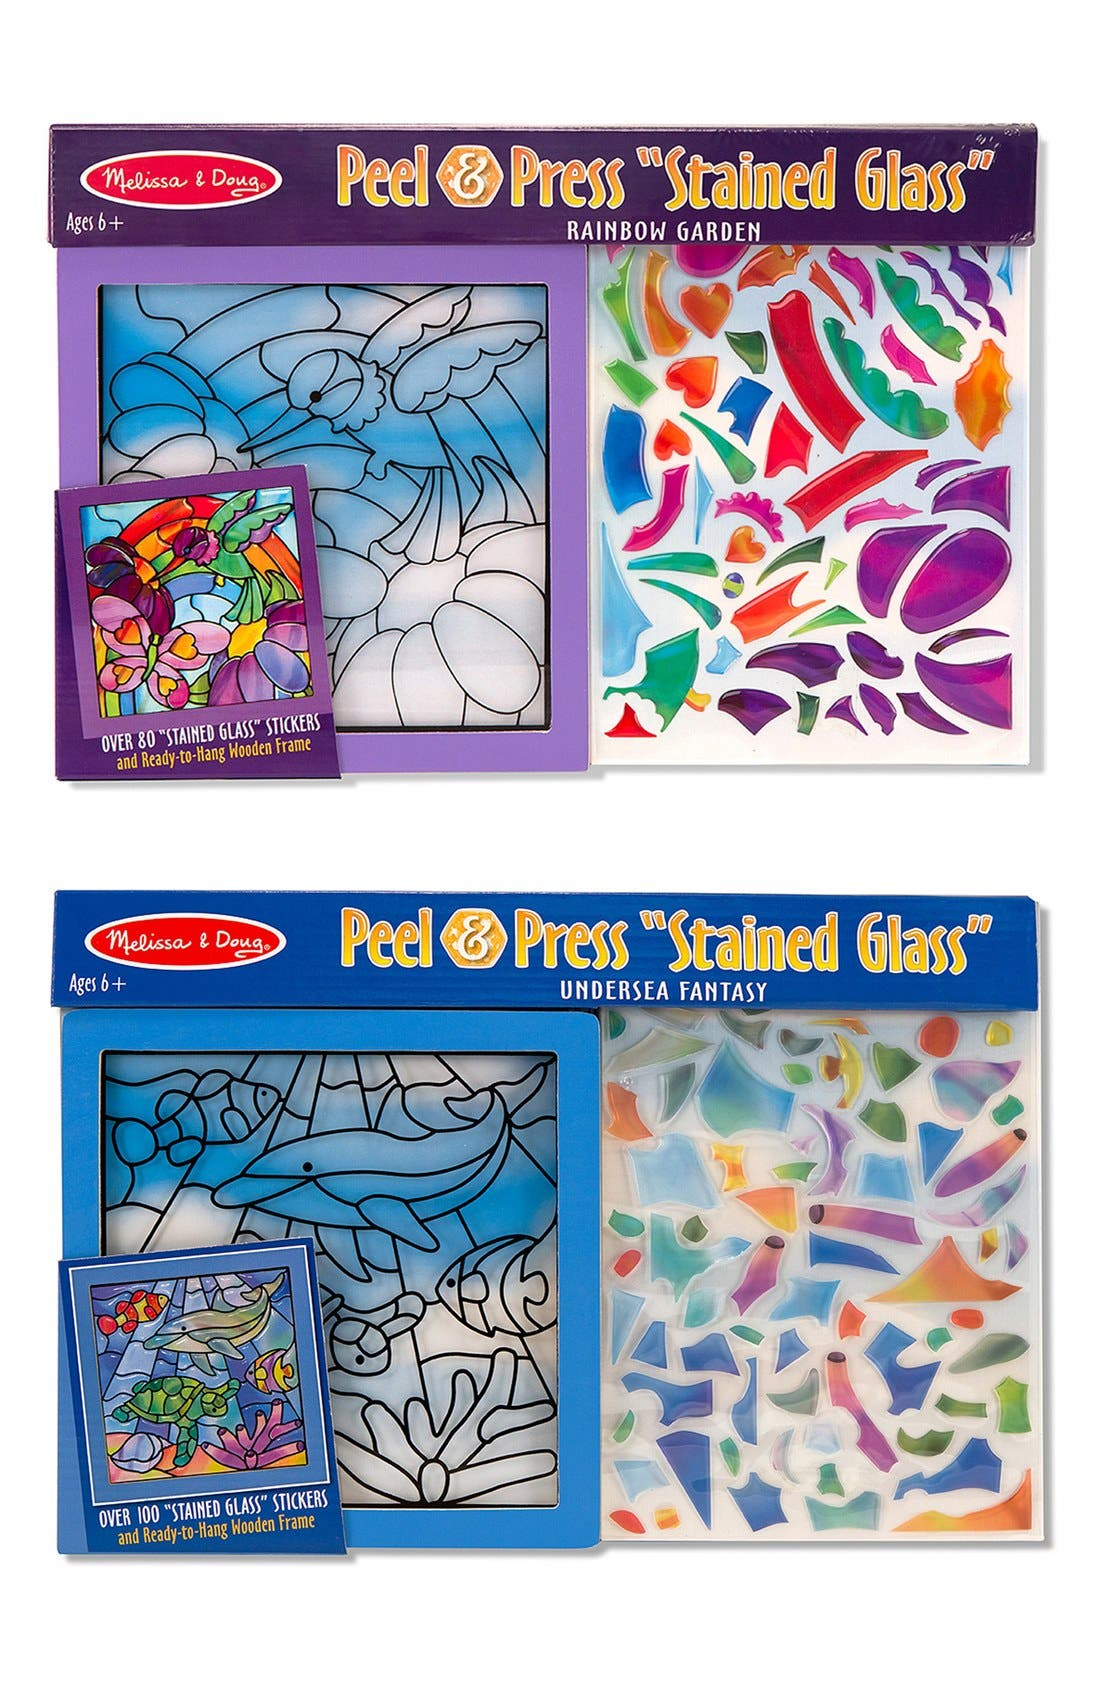 Melissa & Doug 'Undersea Fantasy & Rainbow Garden' Peel & Press Sticker Kits (2-Pack)